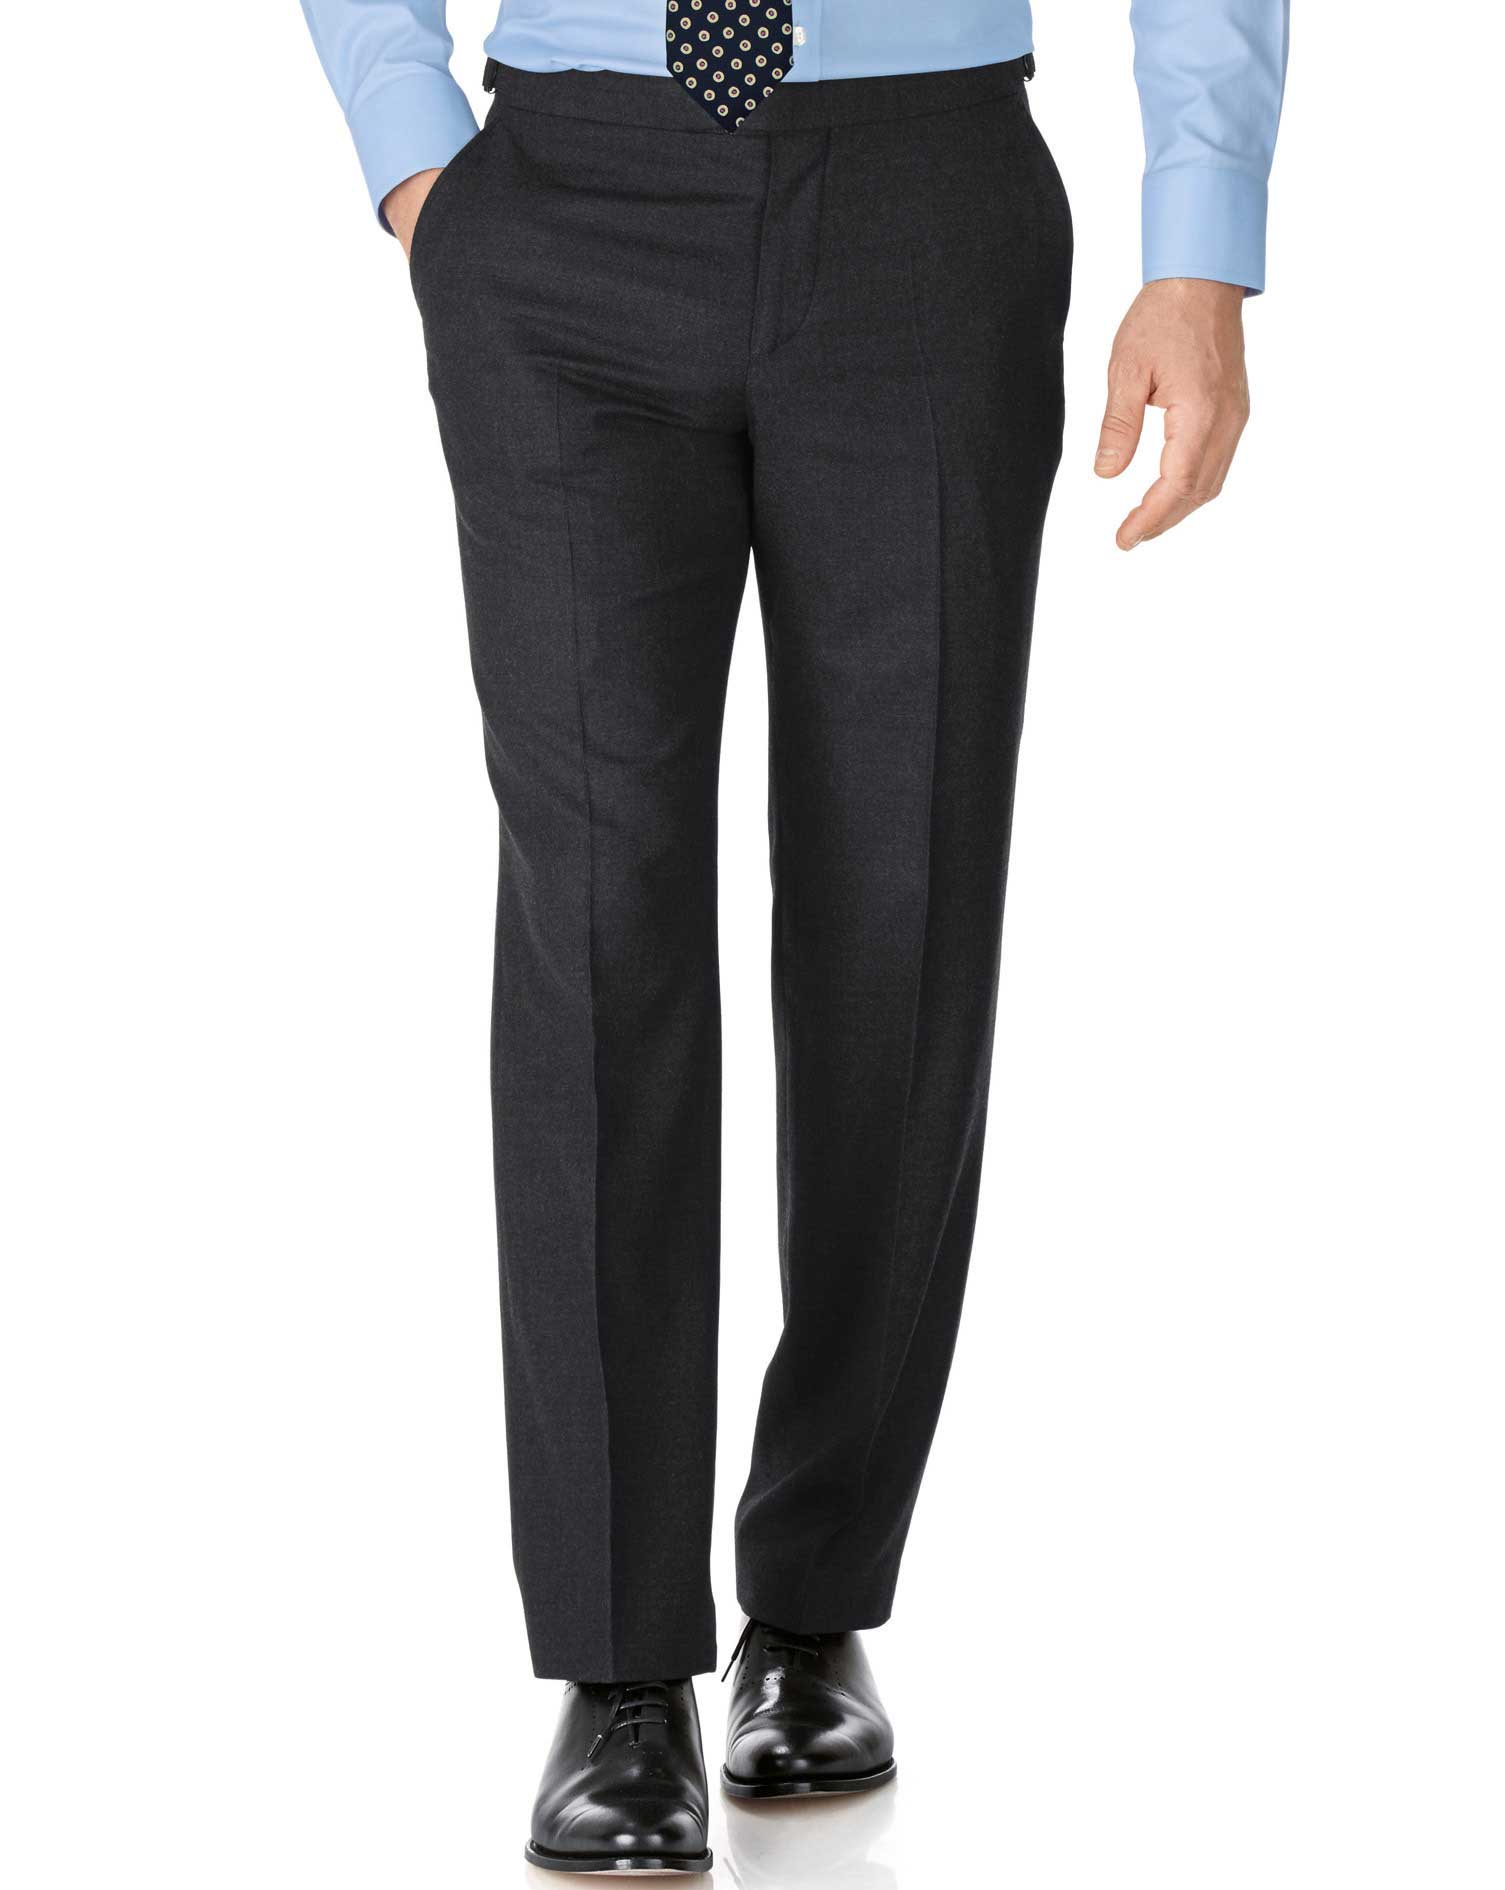 Charcoal Slim Fit British Serge Luxury Suit Trousers Size W38 L38 by Charles Tyrwhitt